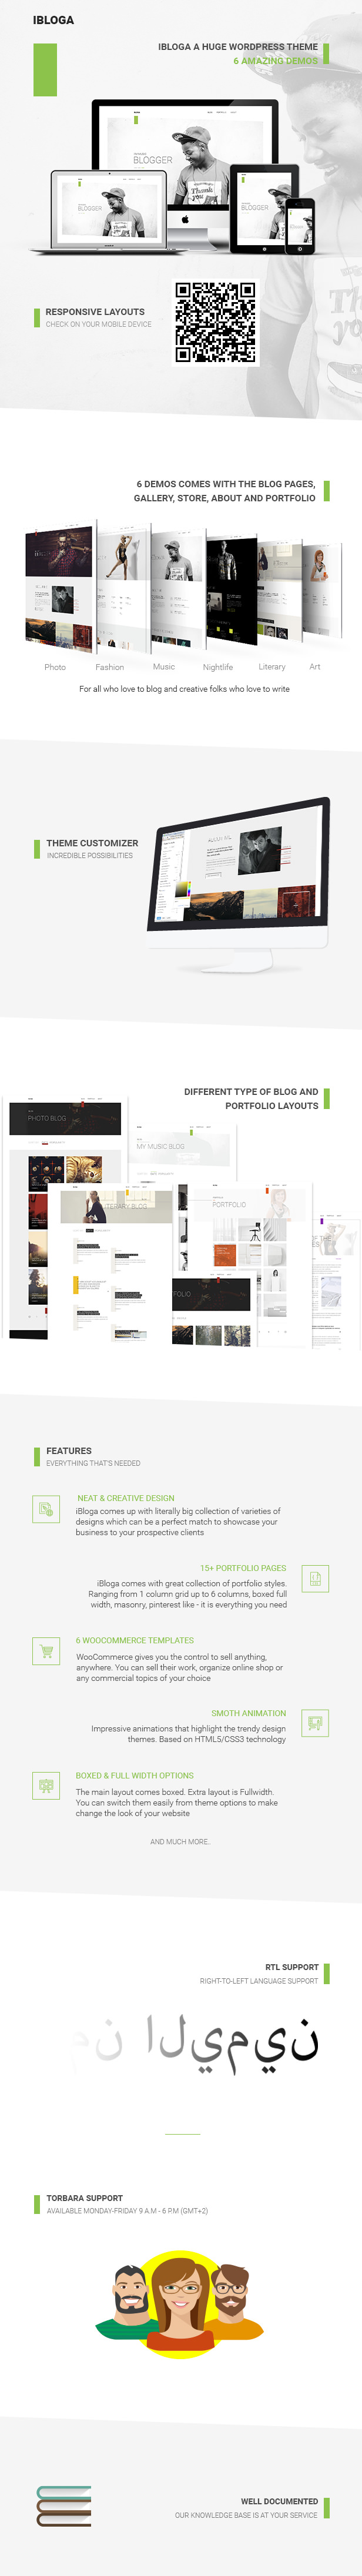 iBloga — Photo, Fashion, Music, Nightlife, Literary & Art Professional Blog Template - 1